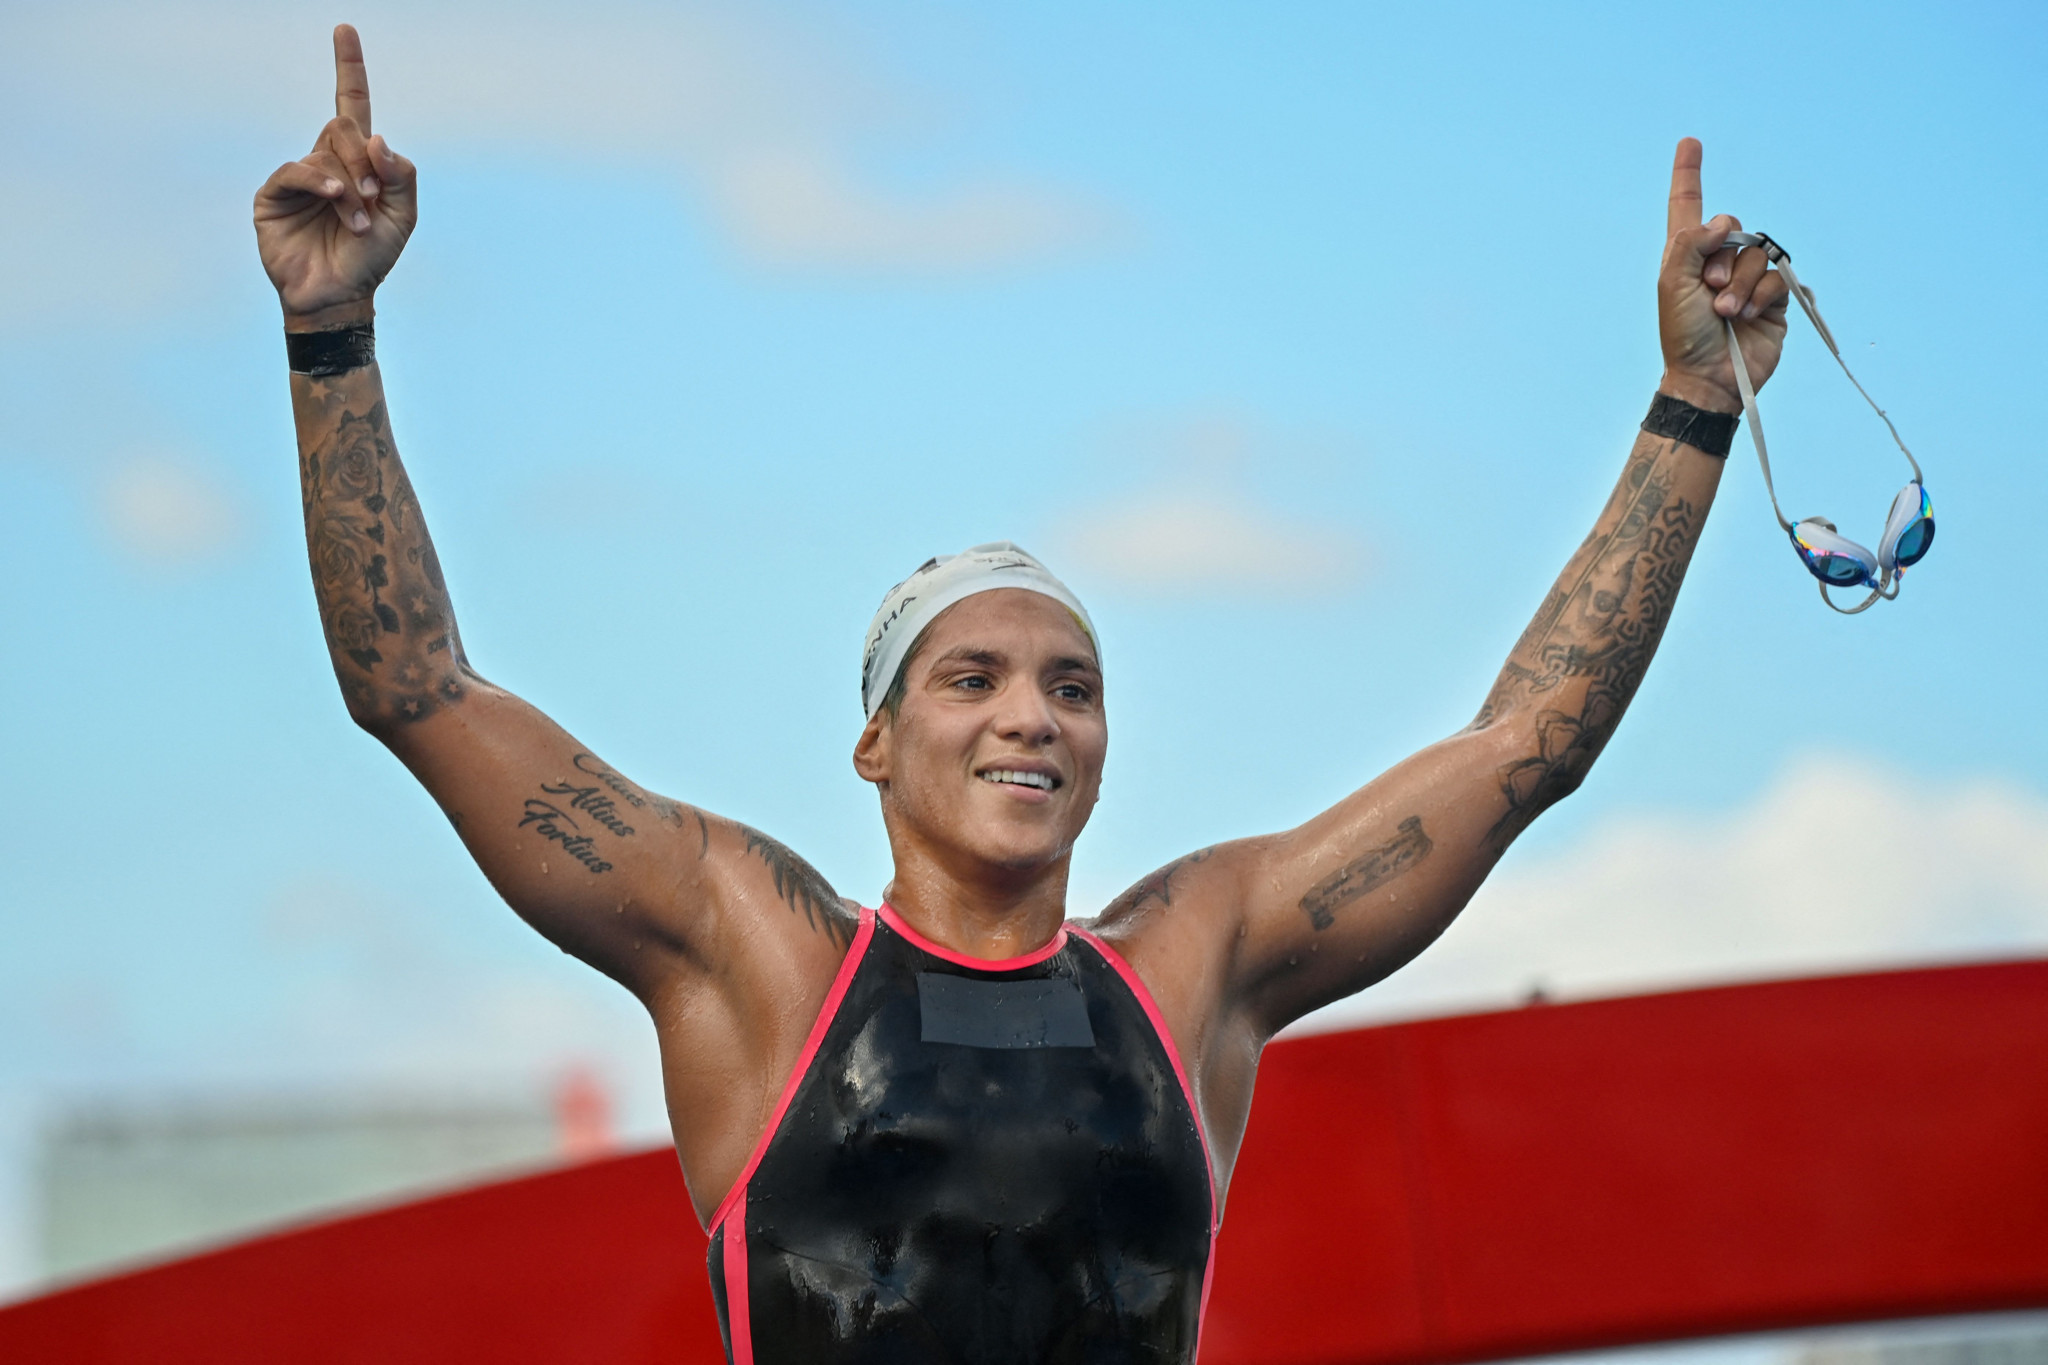 Five-time world champion Ana Marcela Cunha of Brazil won the first medal of the day, finally adding Olympic silverware to her collection by finishing first in the women's 10km swim ©Getty Images